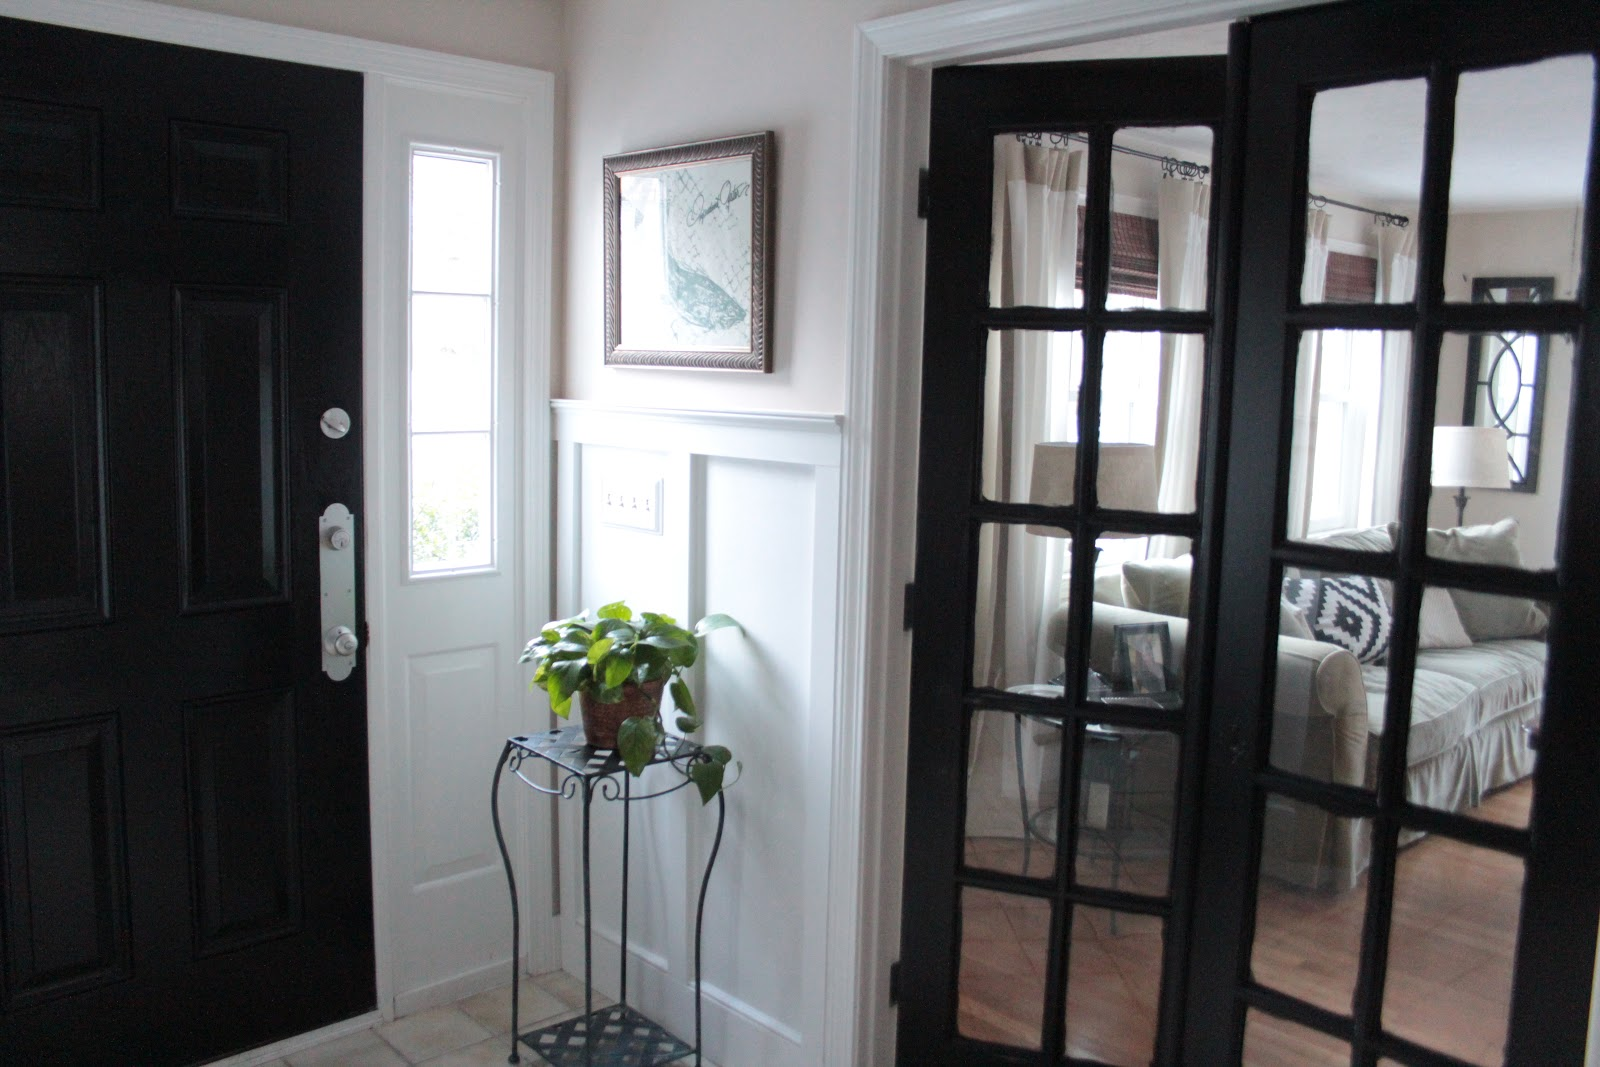 White interior doors great home design i hate myself for loving you shine your light eventelaan Image collections